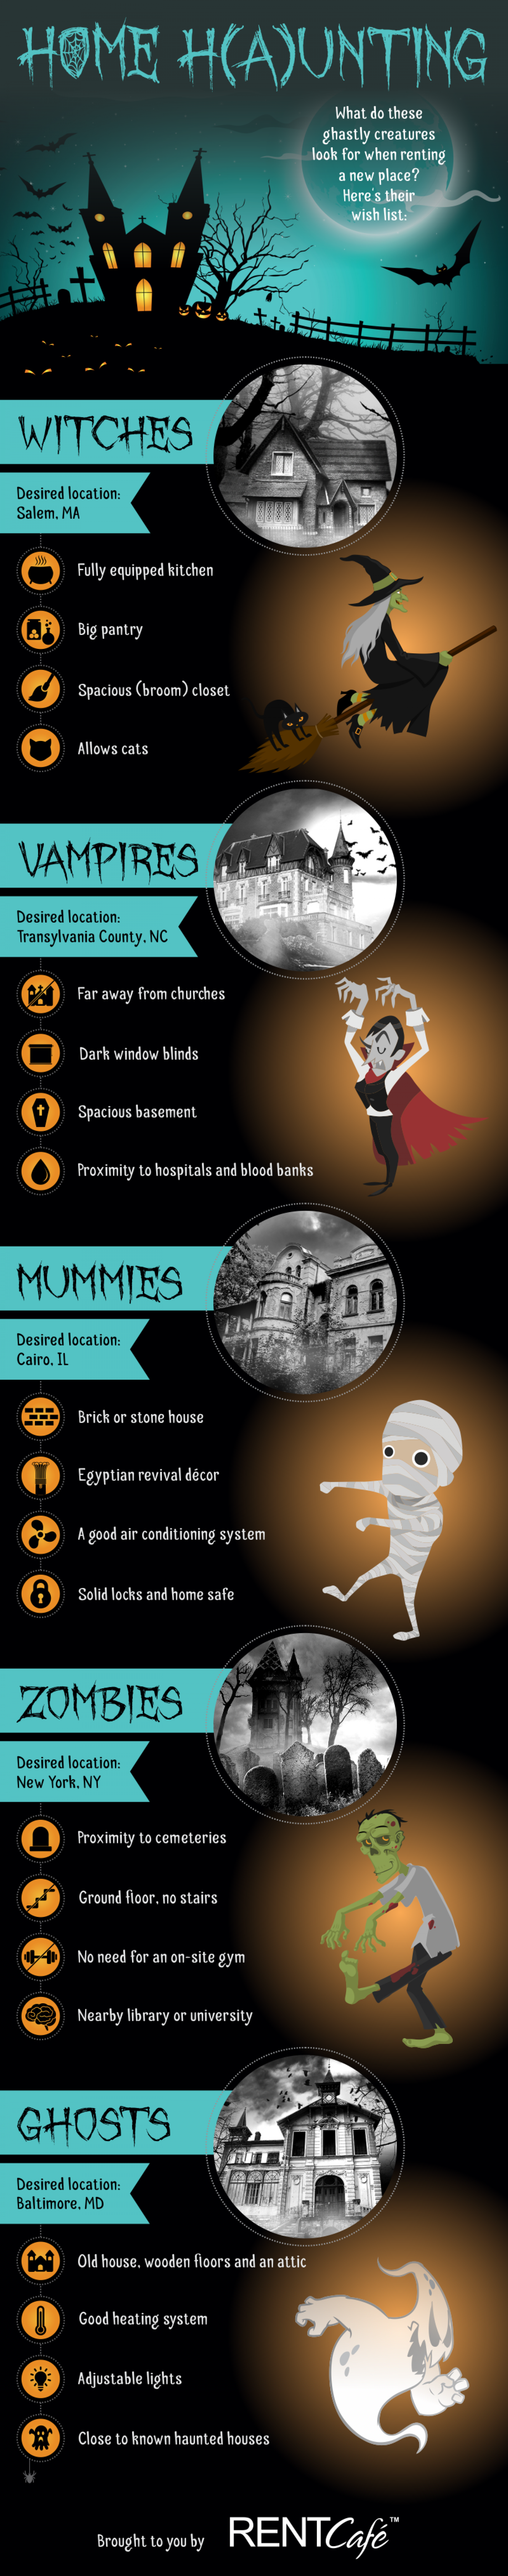 Halloween Home H(a)unting: What Do Vampires and Witches Look For In a New Place? Infographic